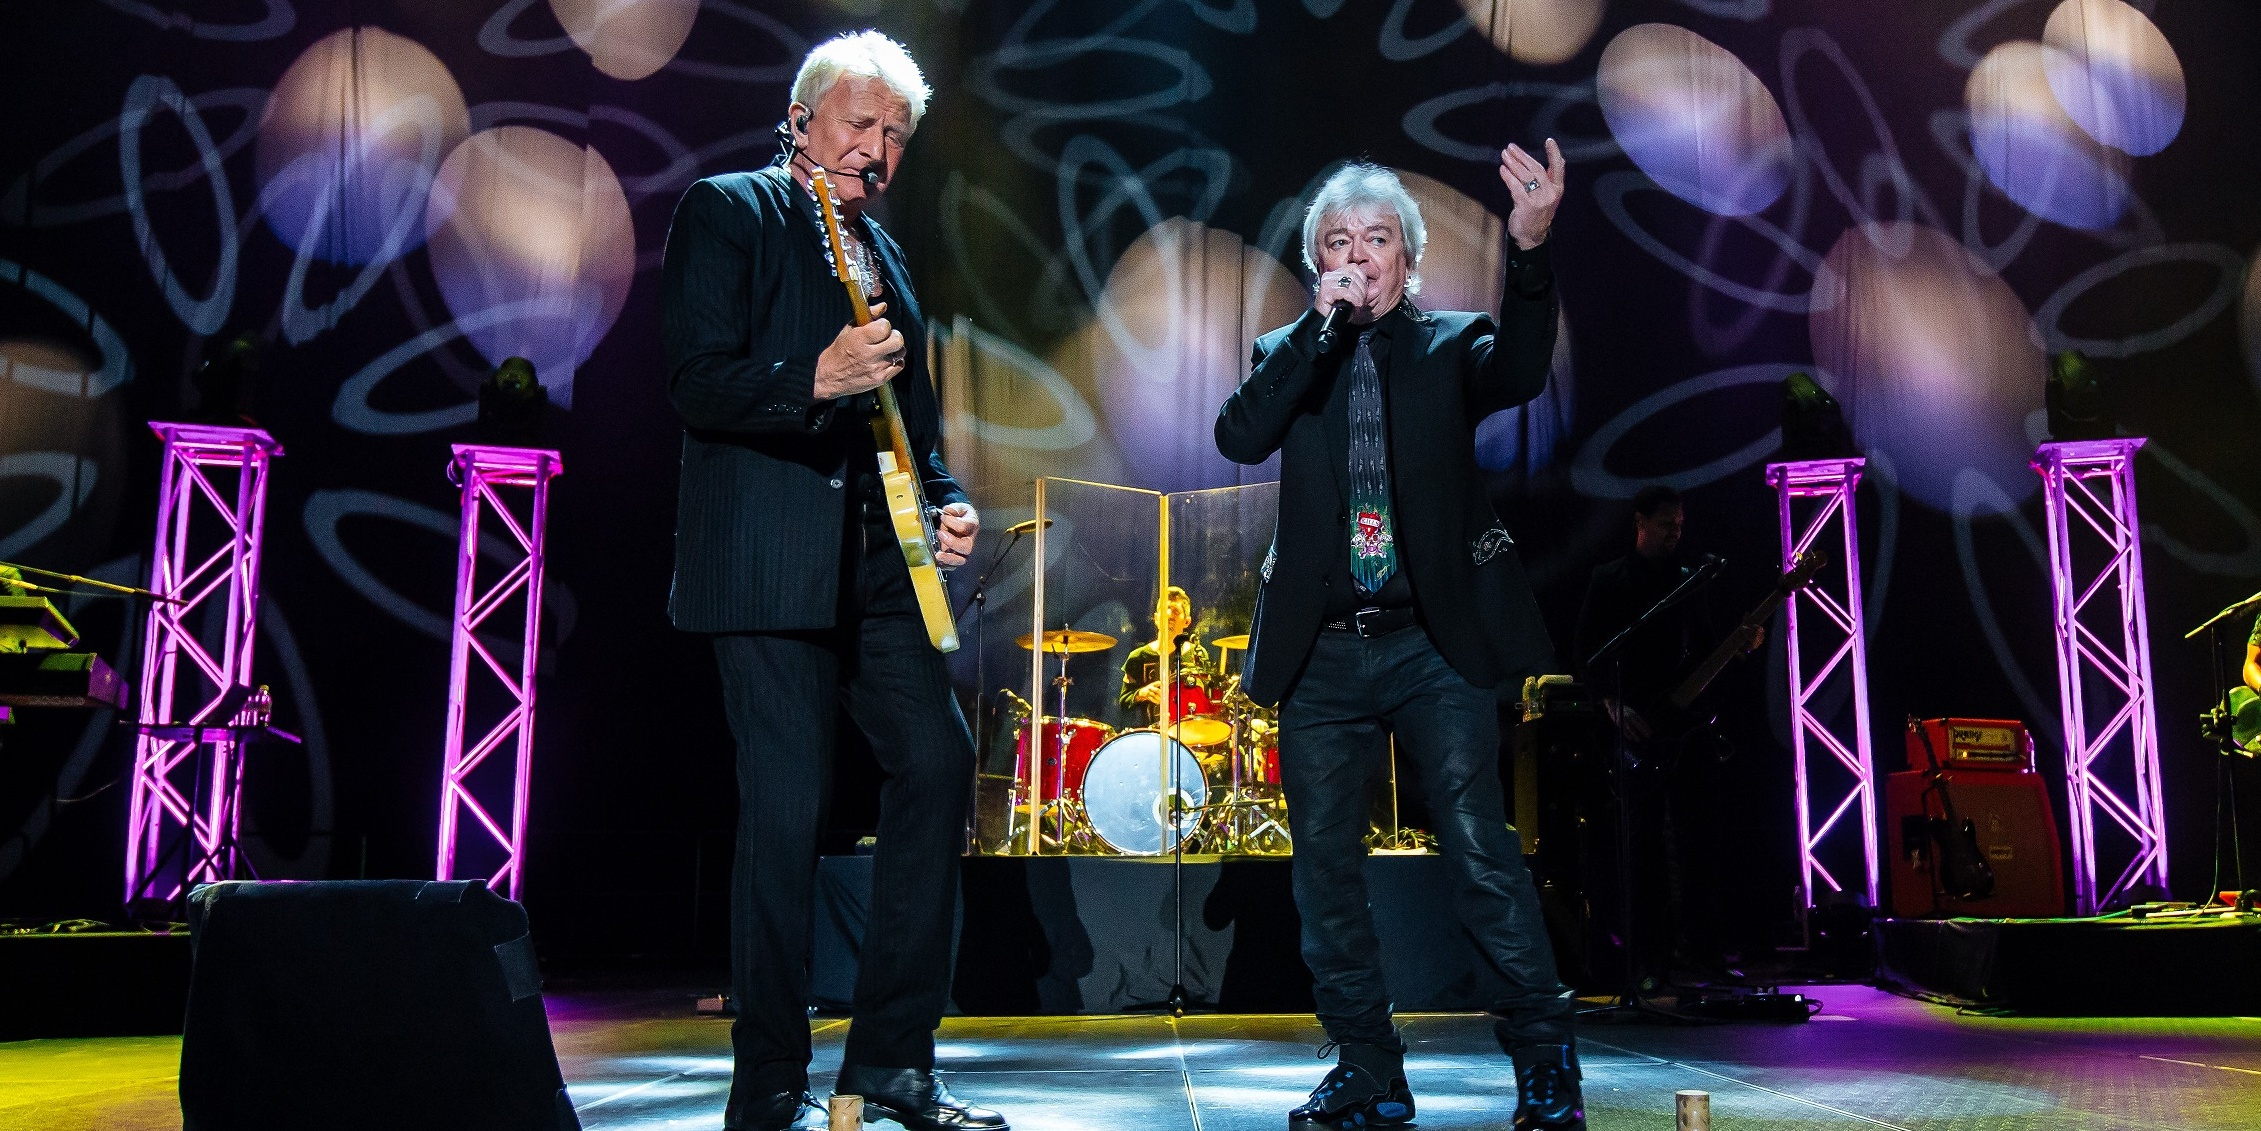 Old hits enchant anew at Air Supply's concert in Singapore – gig report